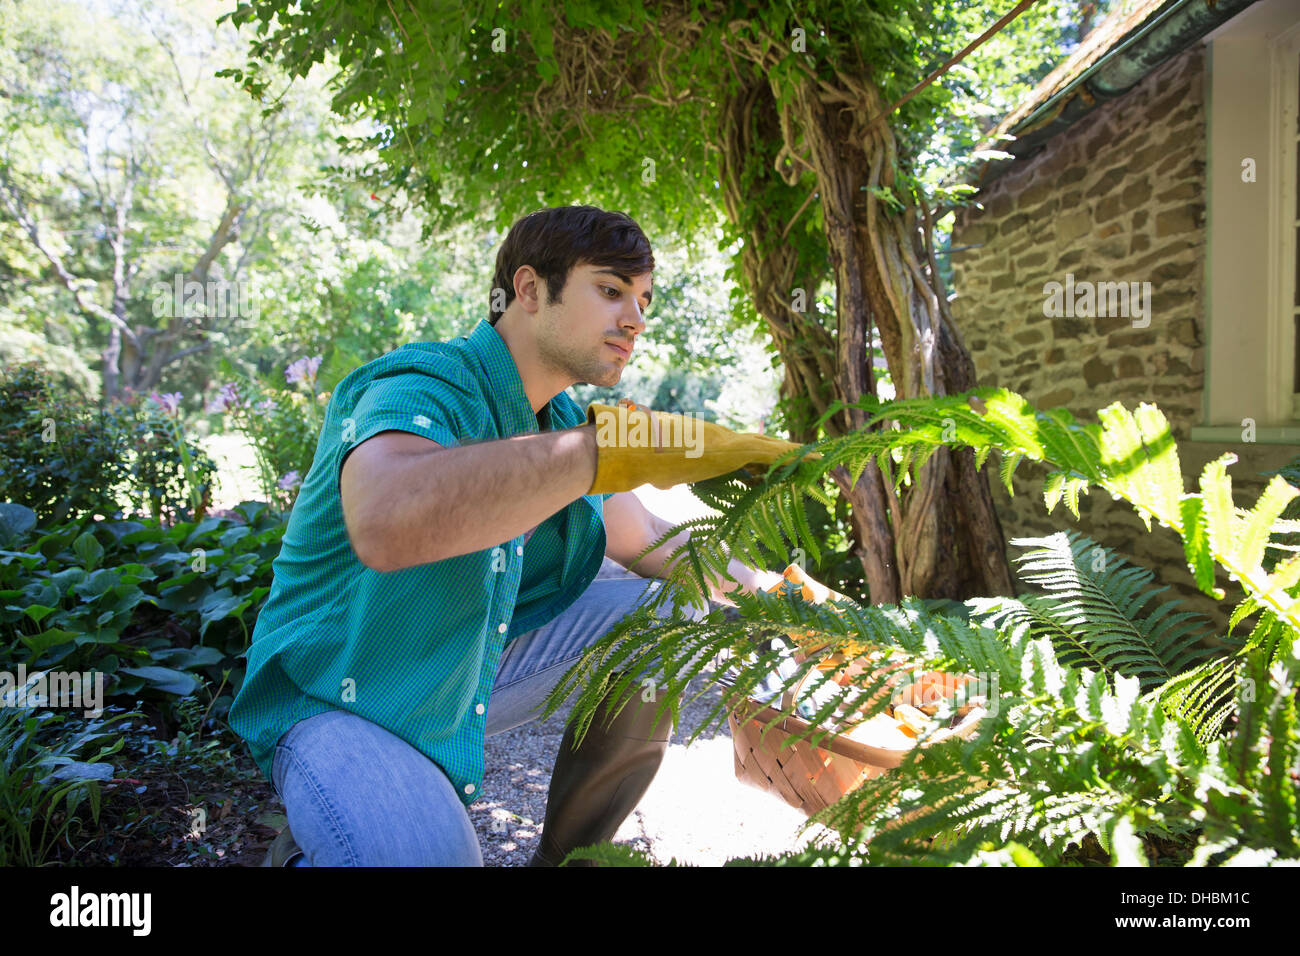 A farm growing and selling organic vegetables and fruit. A young man working. - Stock Image